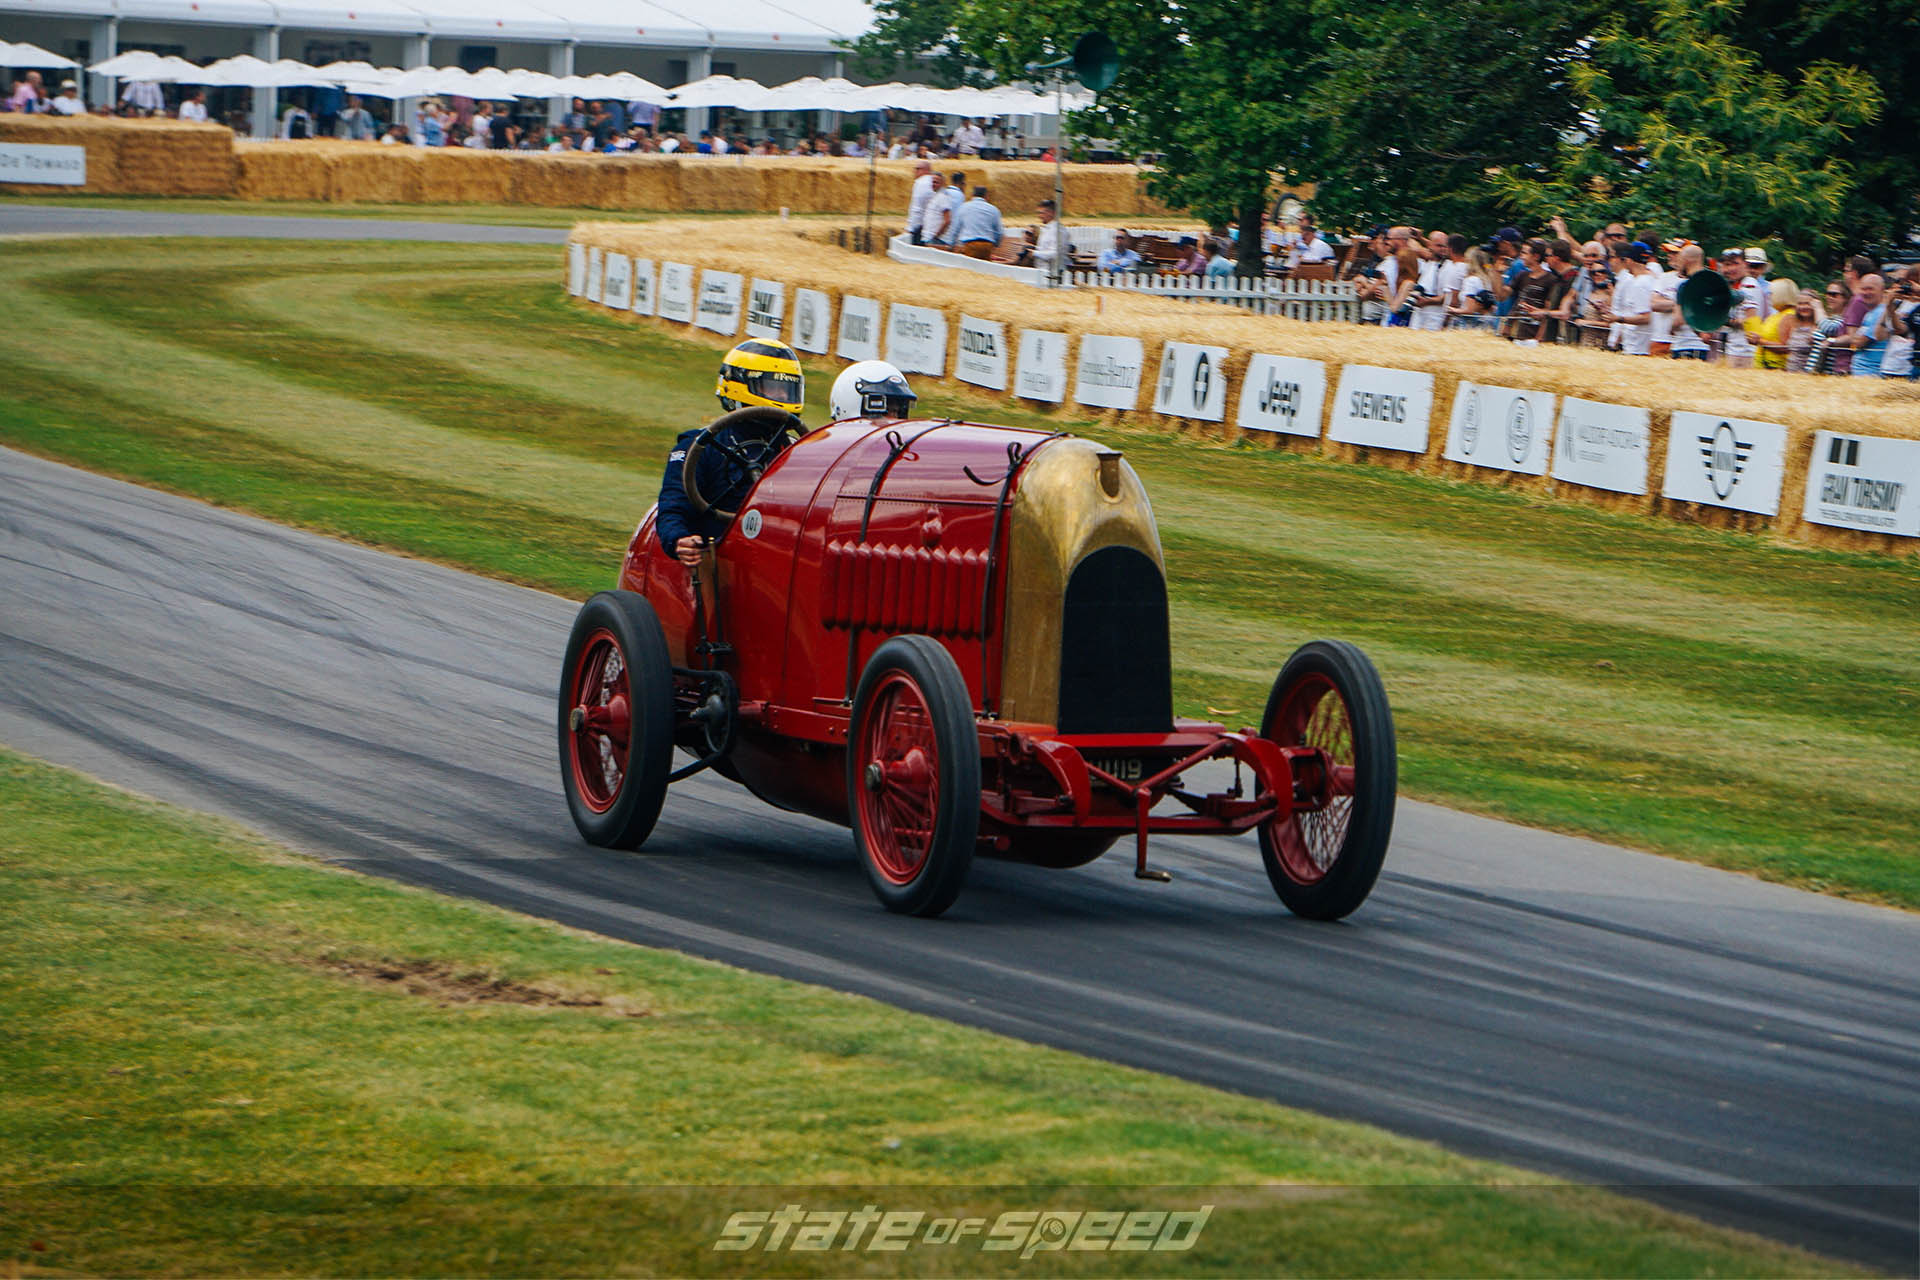 Beast of Turin racing at goodwood festival of speed